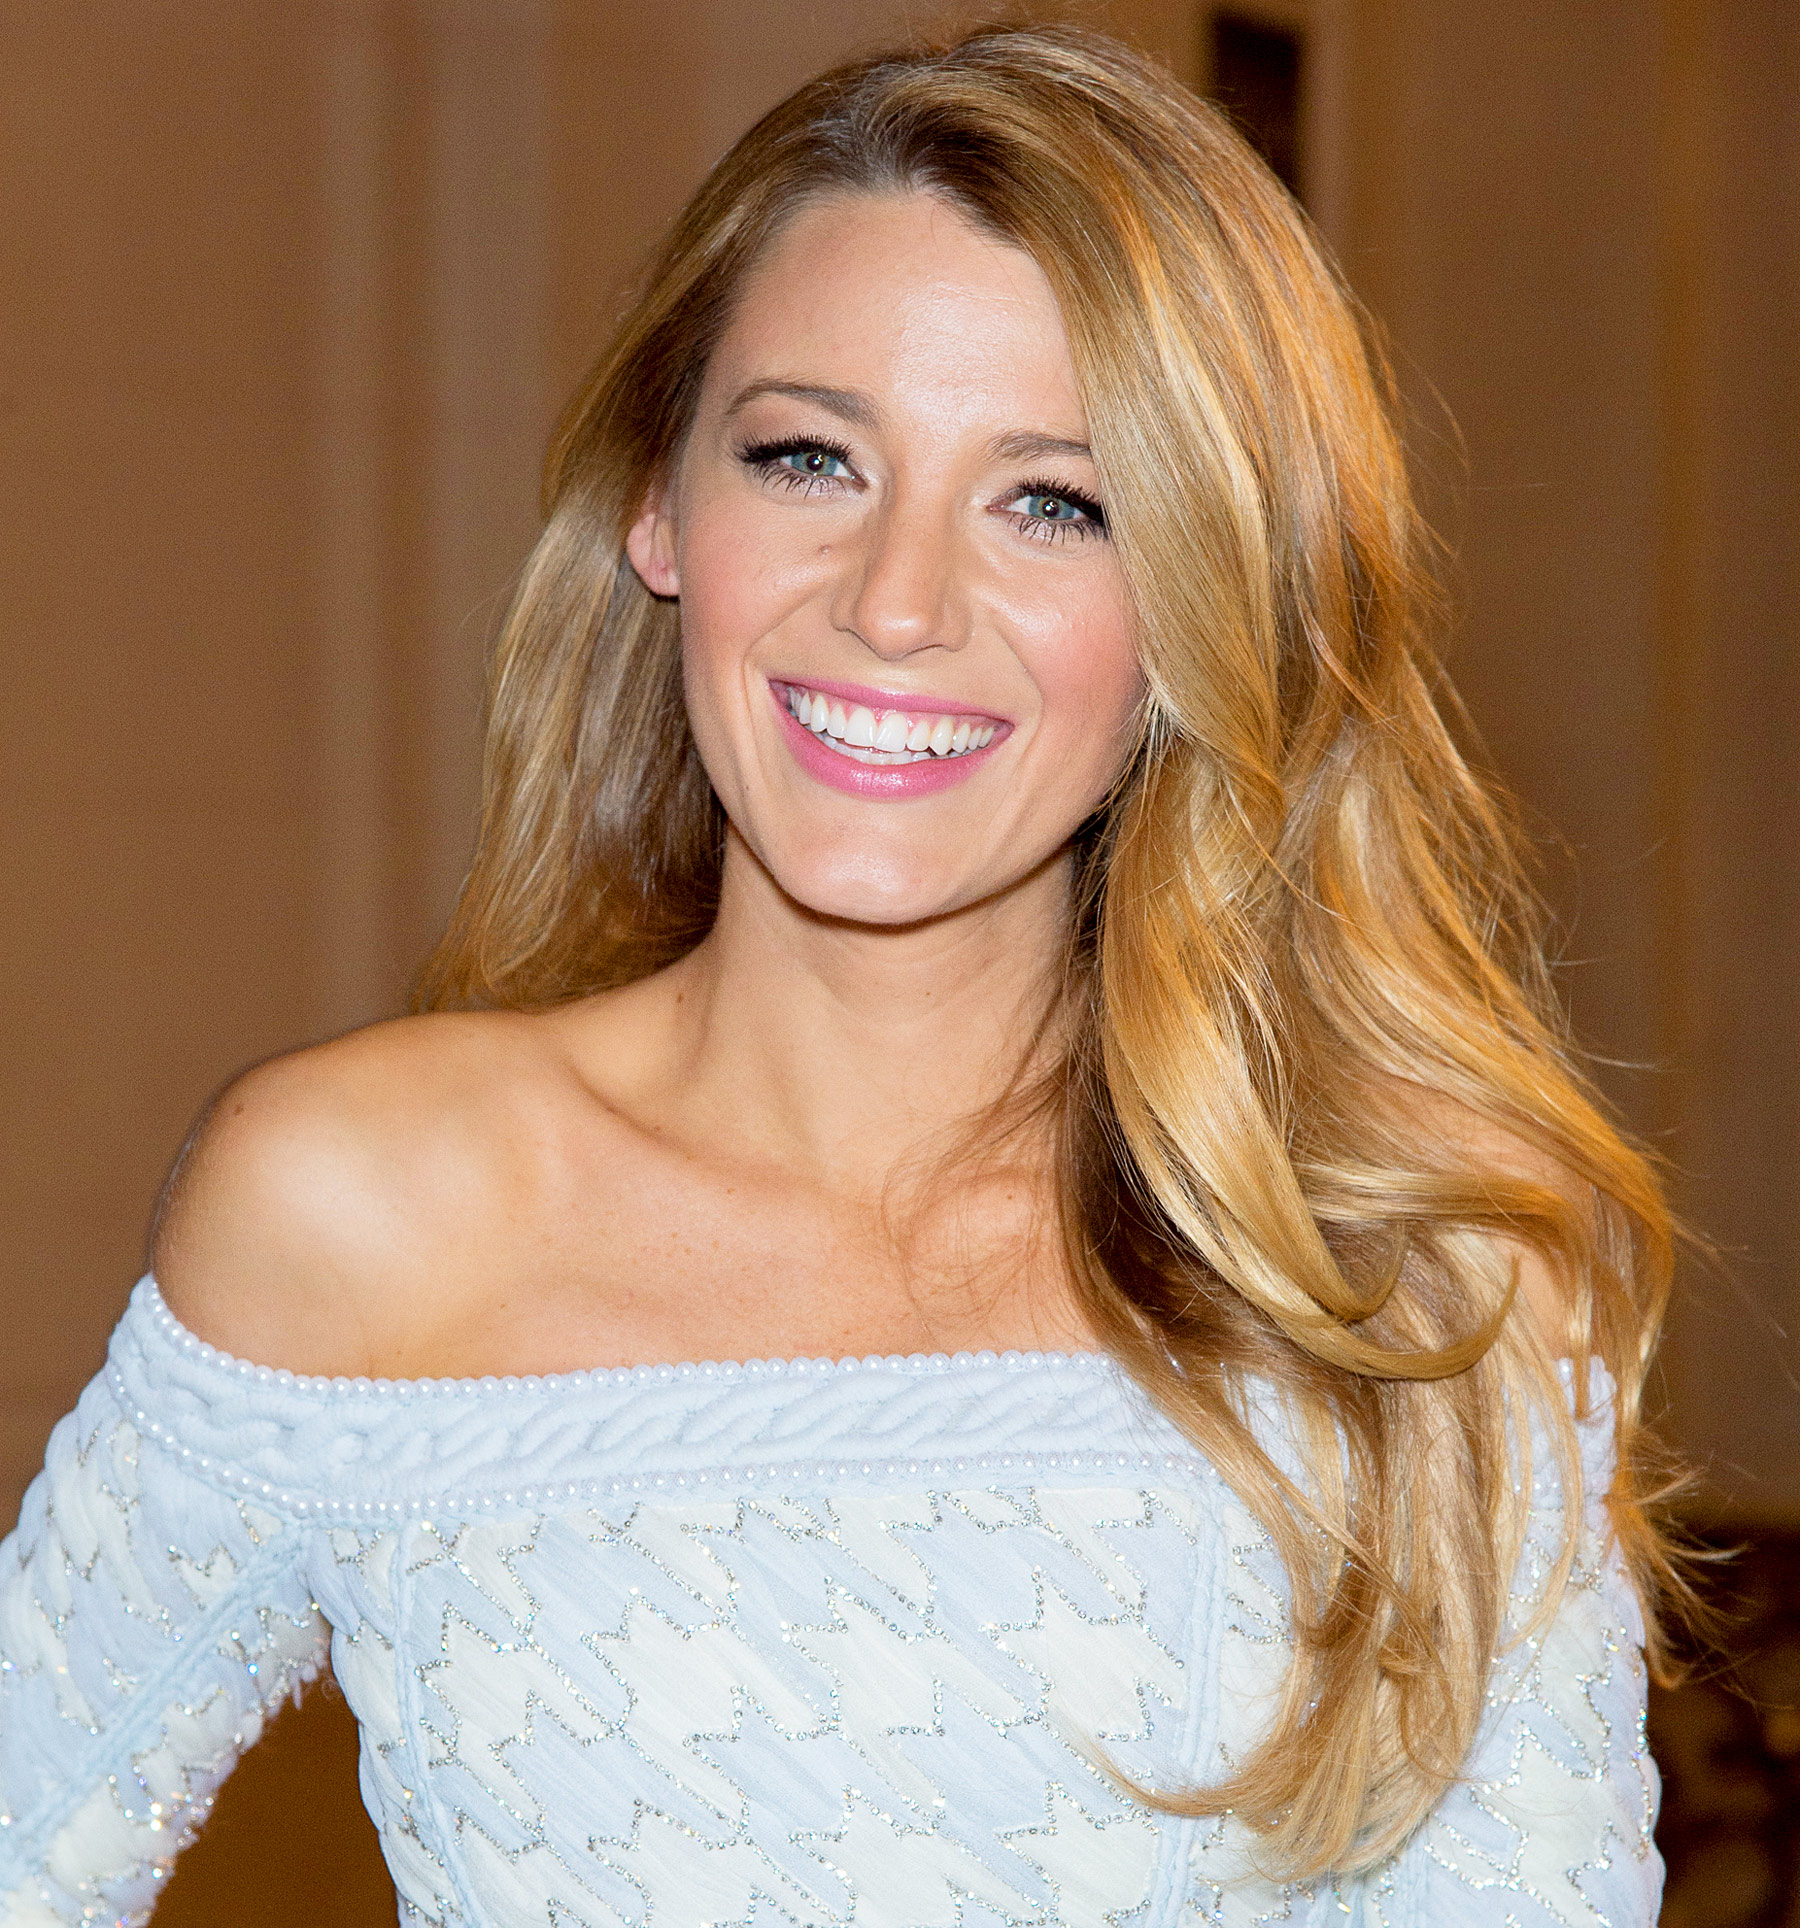 Blake Lively - Her Hobbies, Religion, and Political Views